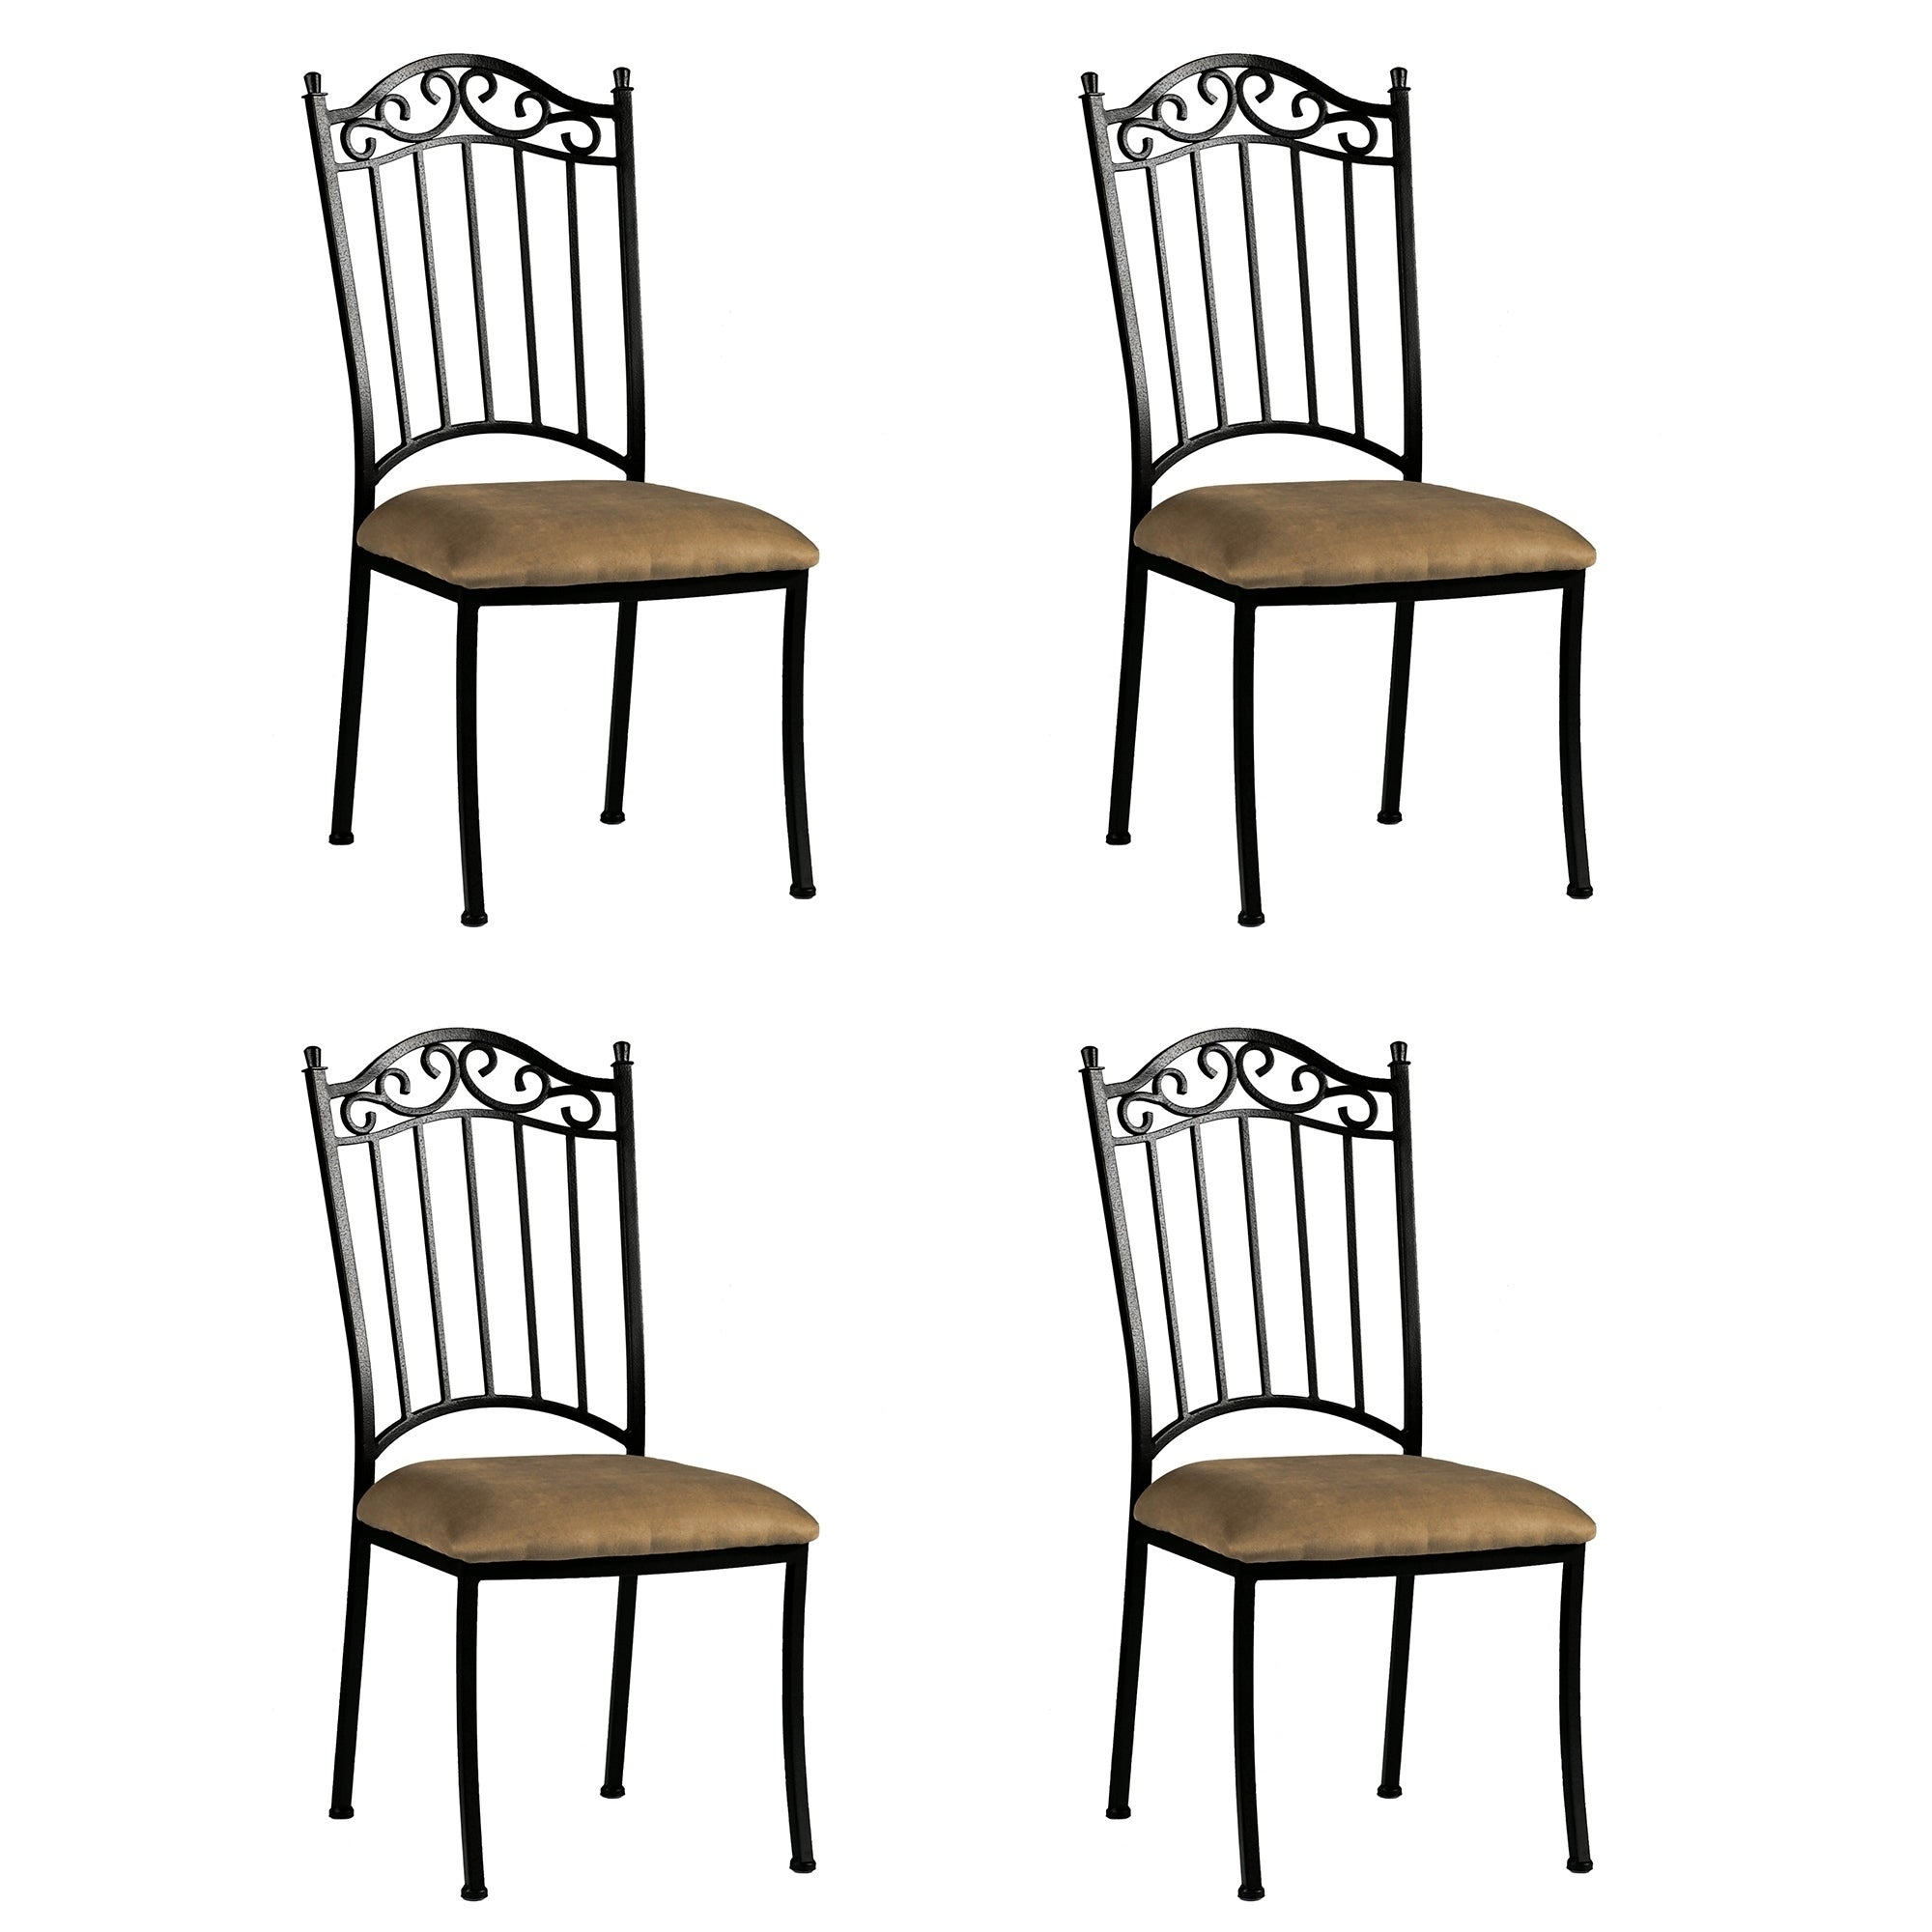 Somette Antique Taupe Suede Wrought Iron Dining Chair (Se...